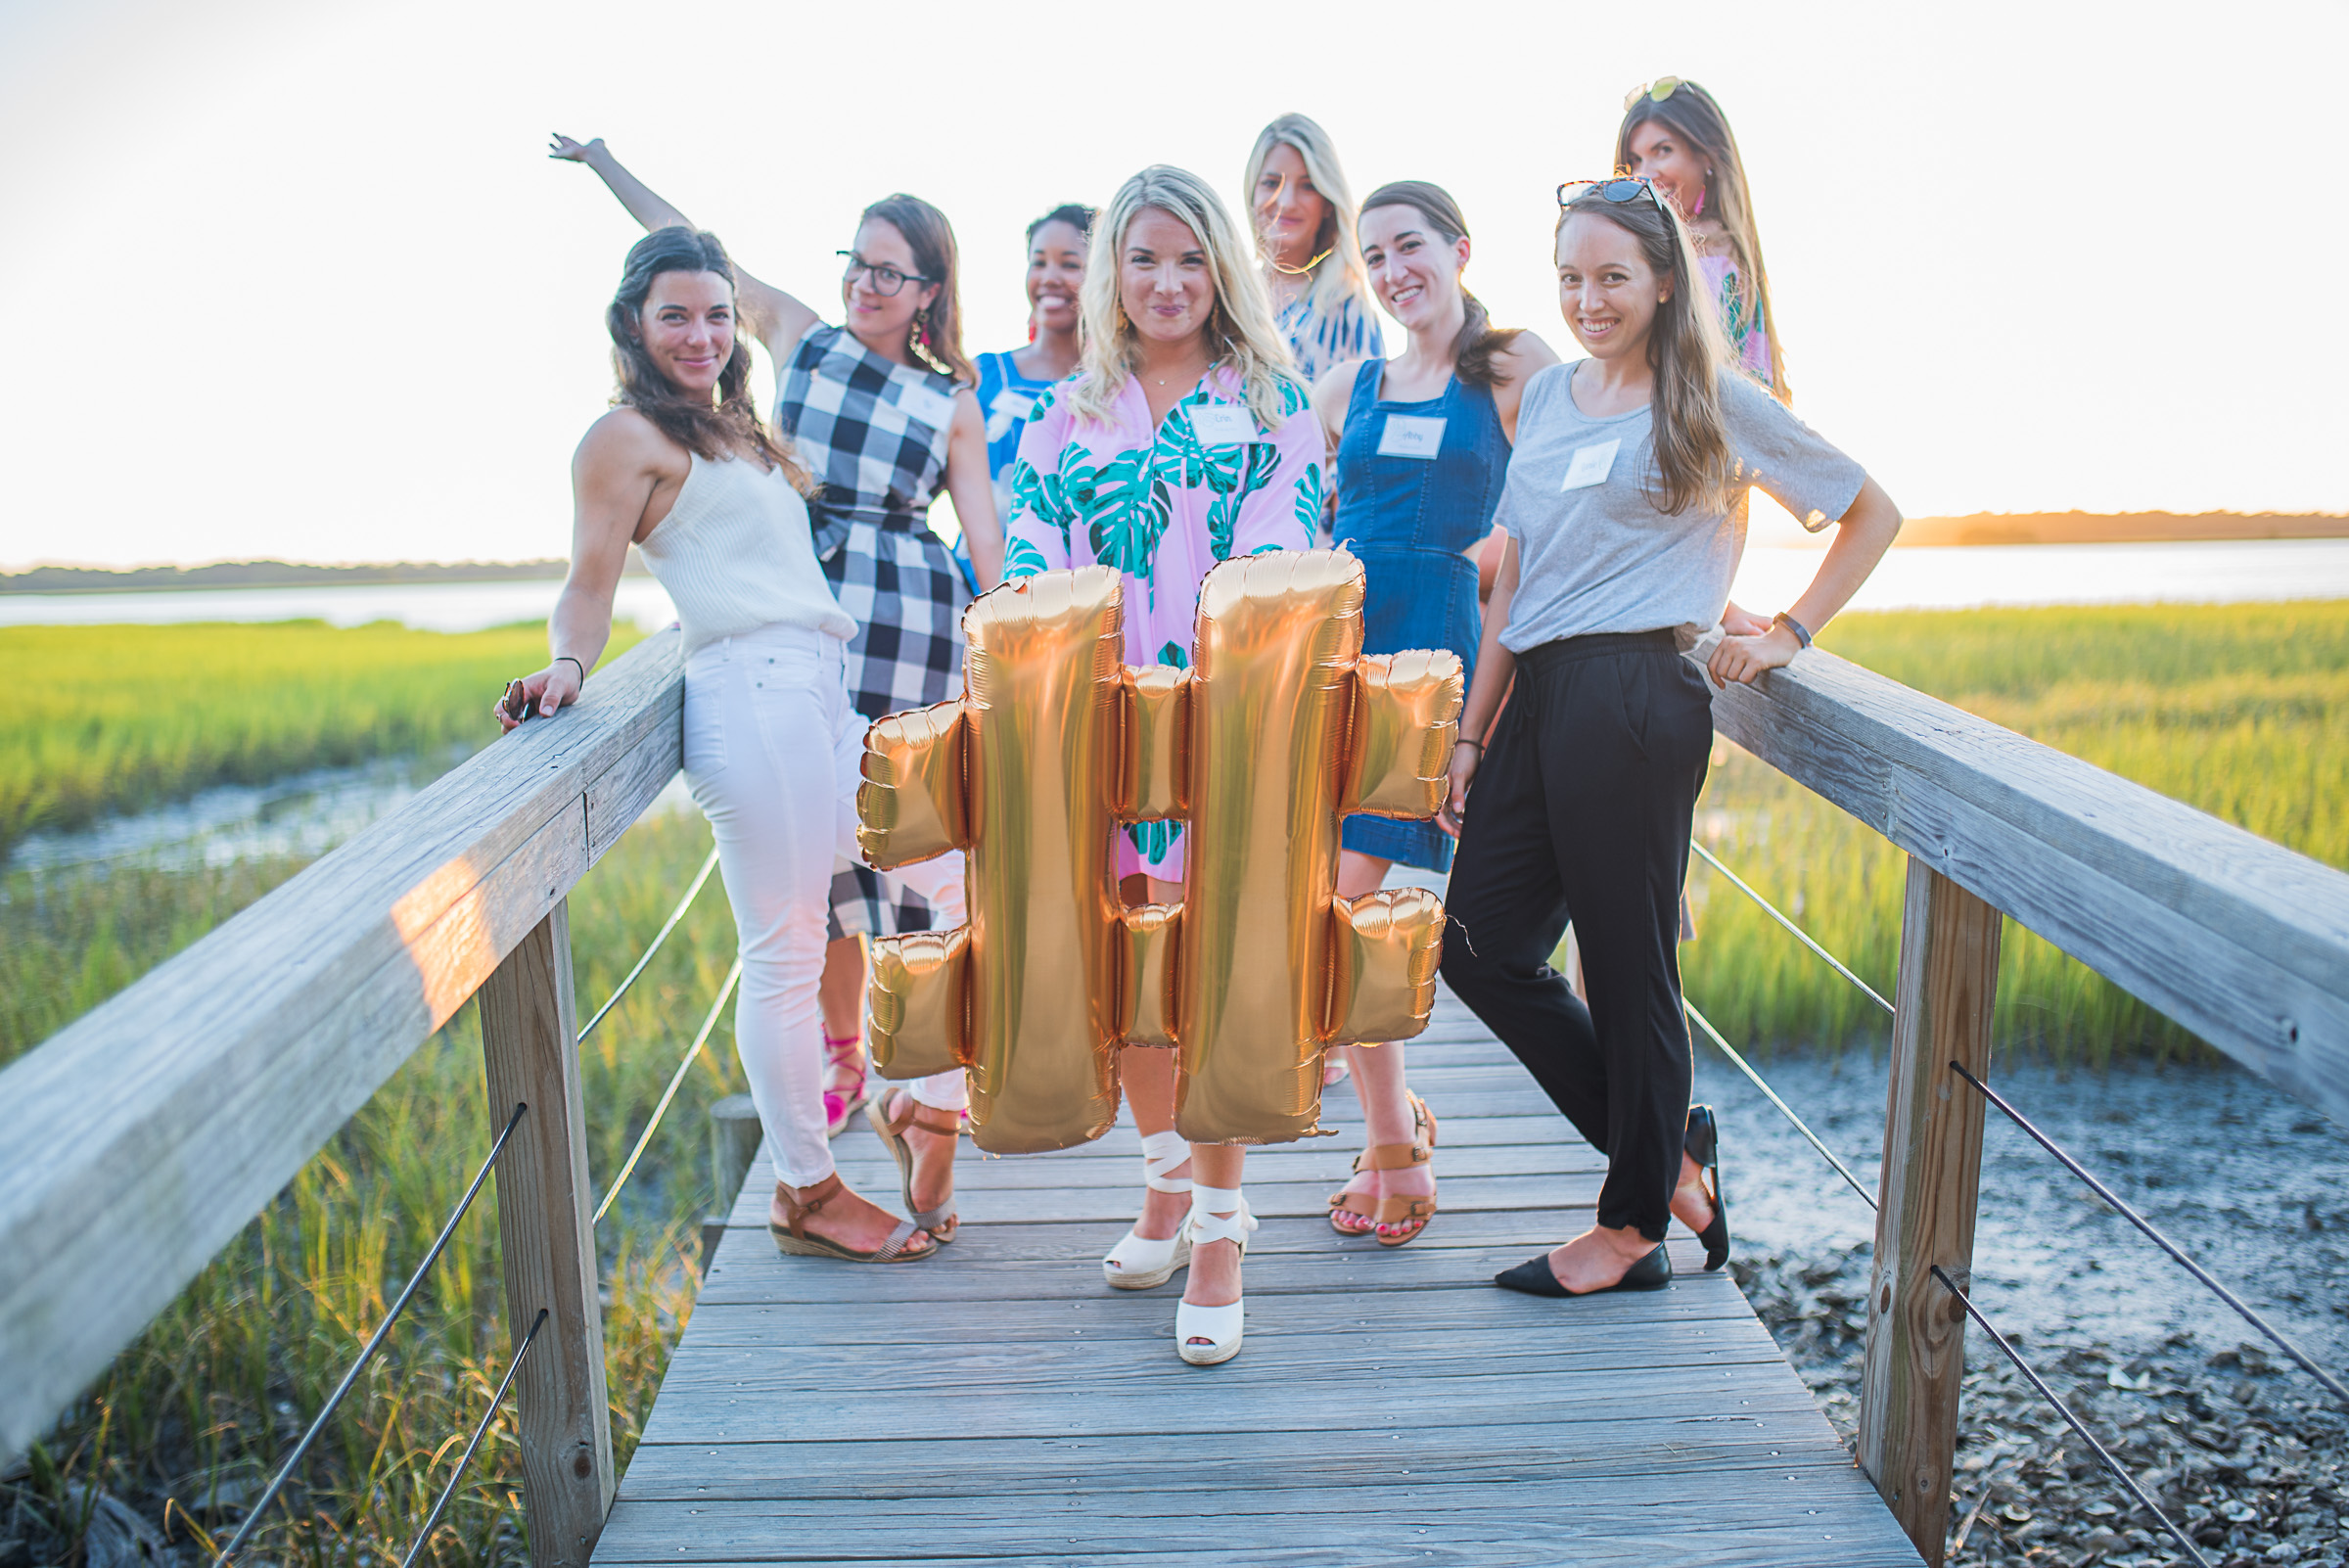 Markey of Hatch Cove Designs ; LIz of Charleston Weekender and Mimi of the Tiny Tassel (both also from Cannonborrough Collective) ; Jayne of Recovery Love and Care ; Abby of  Abby Murphy Photography  ; Kaylan of Kaylan Sells Charleston ; Lanie of  Leapfrog PR